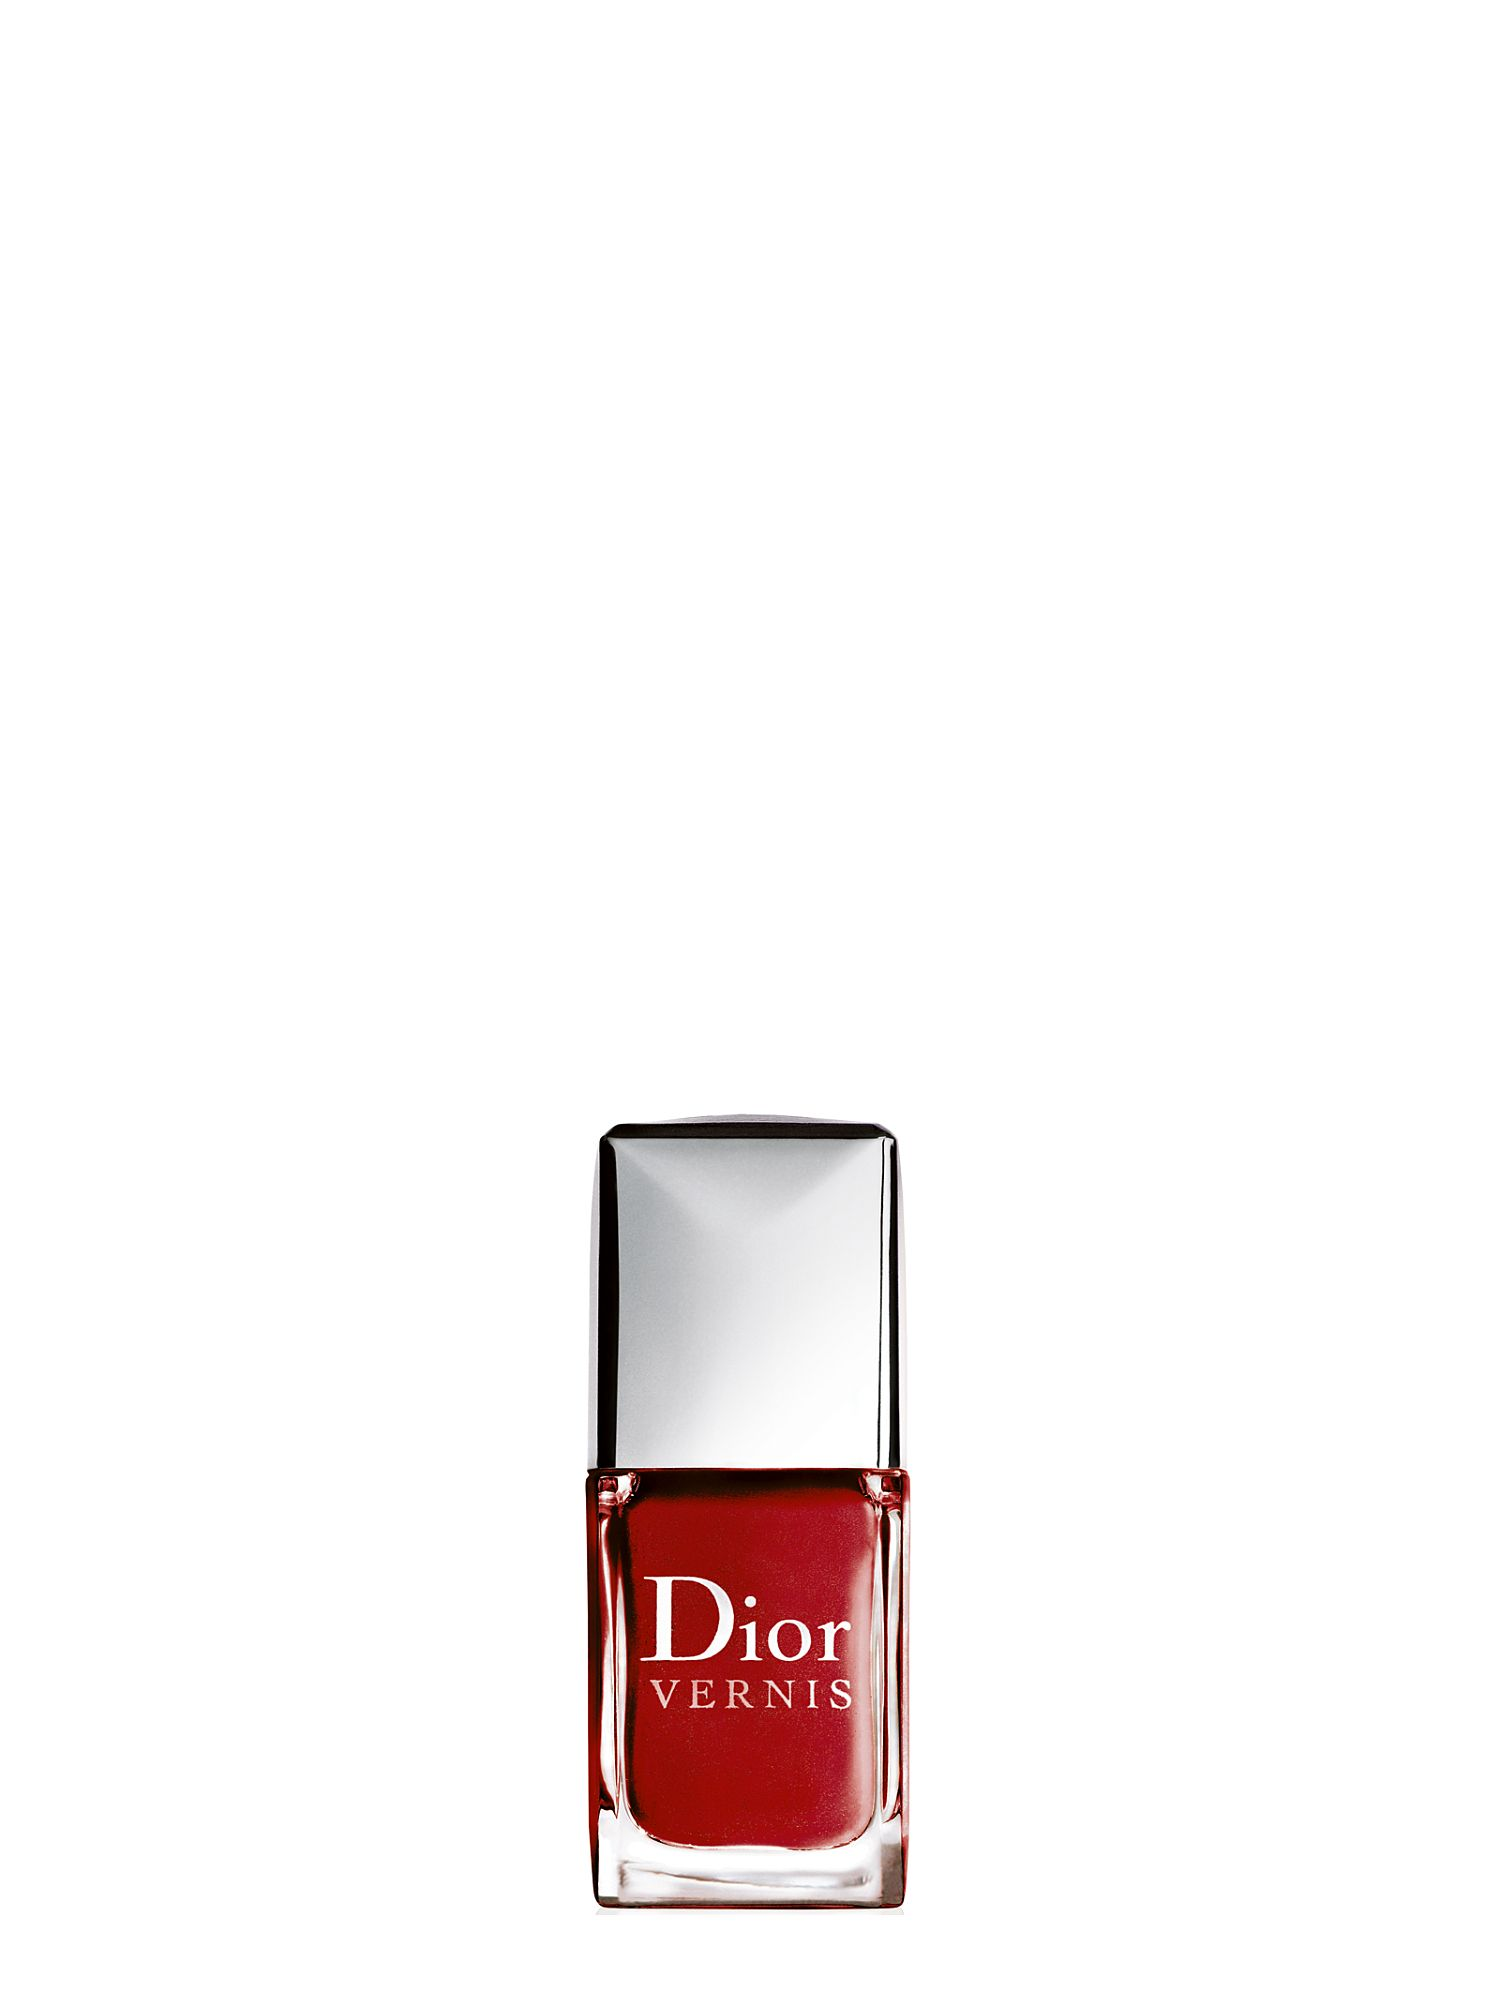 Dior Vernis Long-Wearing Nail Lacquer RED DAHLIA product image